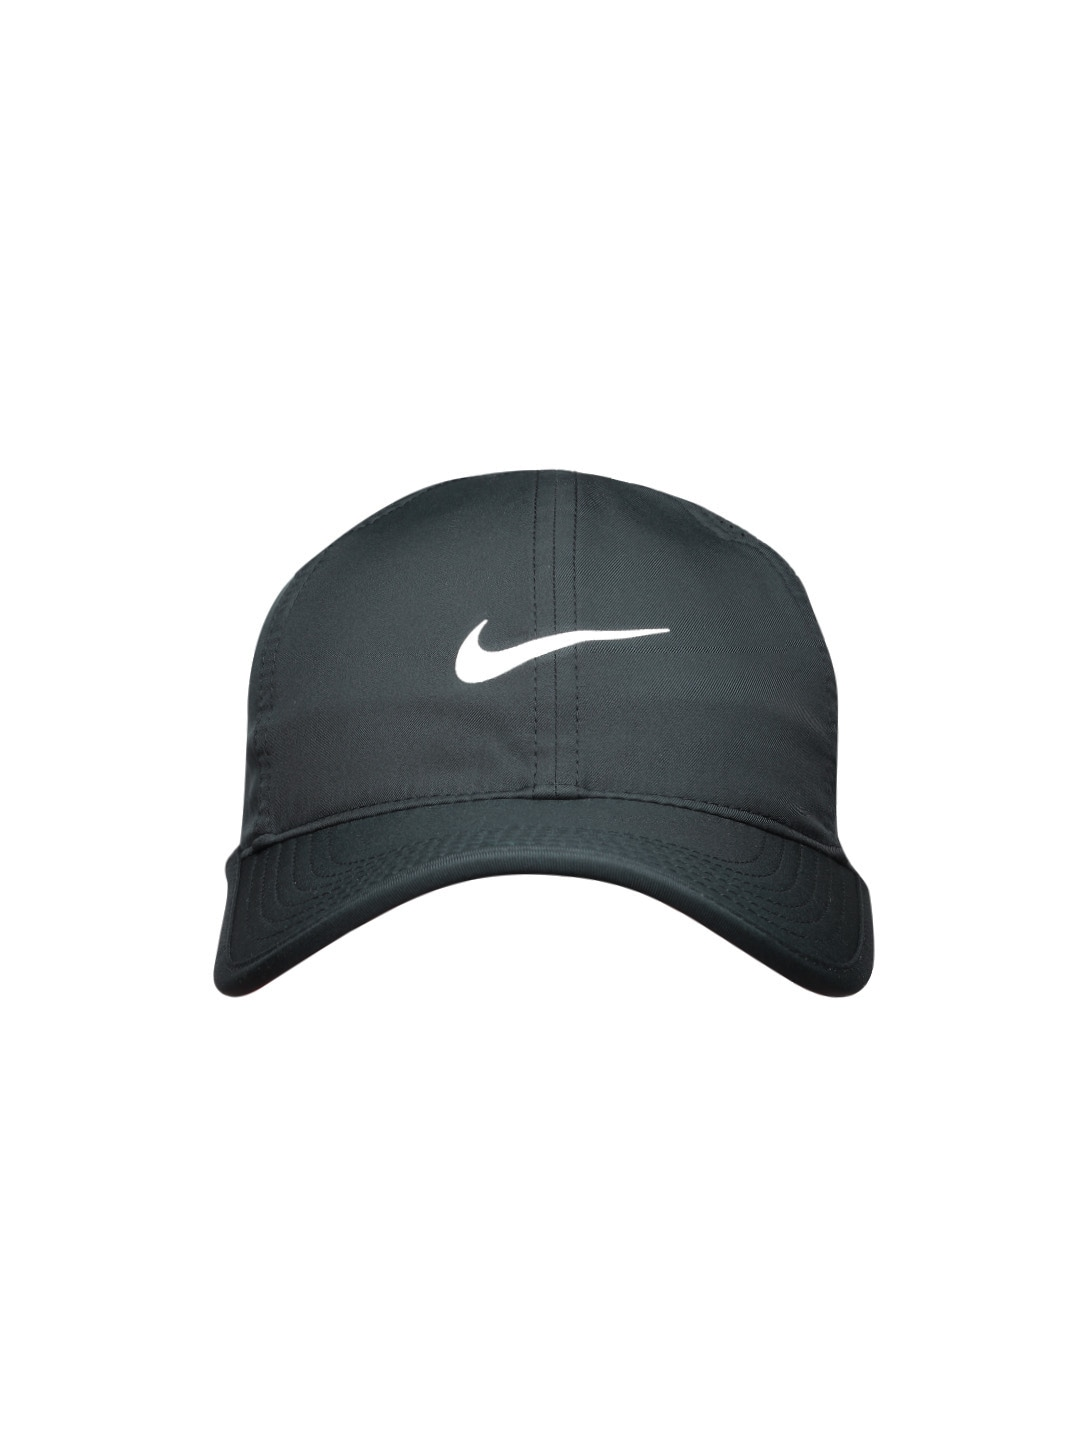 Nike Tennis Caps - Buy Nike Tennis Caps online in India 4db768a4a73